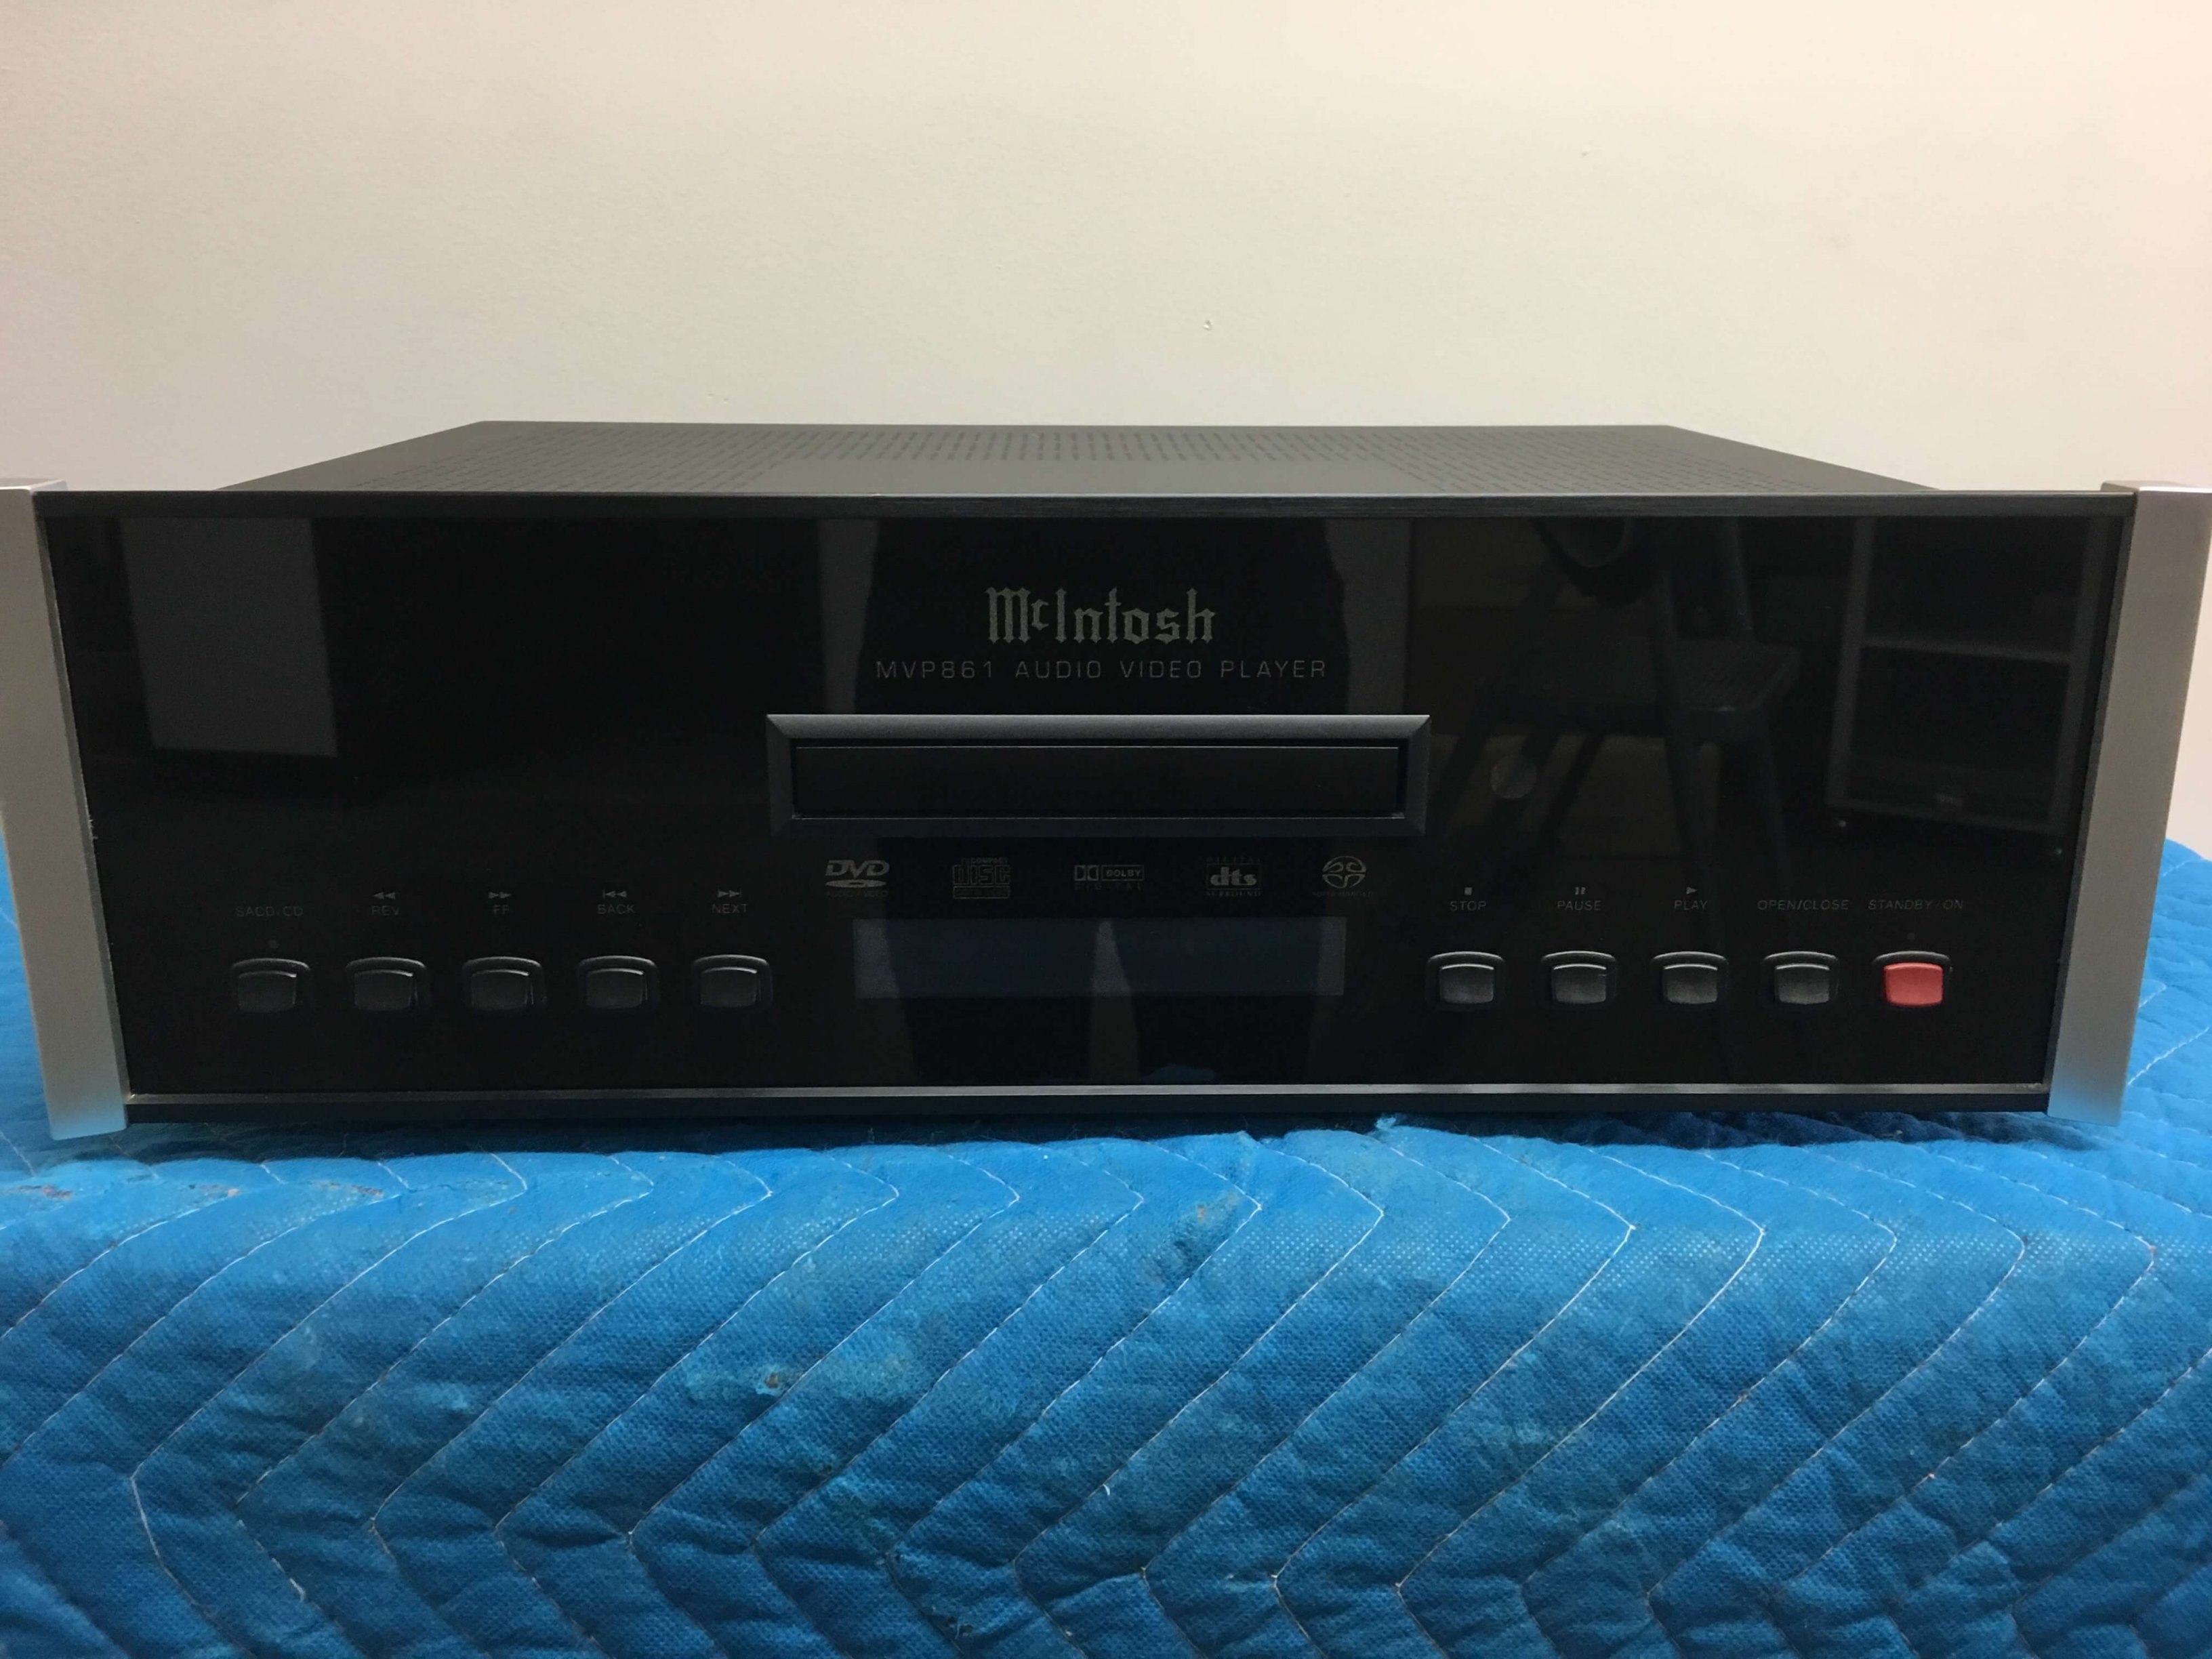 McIntosh MVP861 DVD/CD player